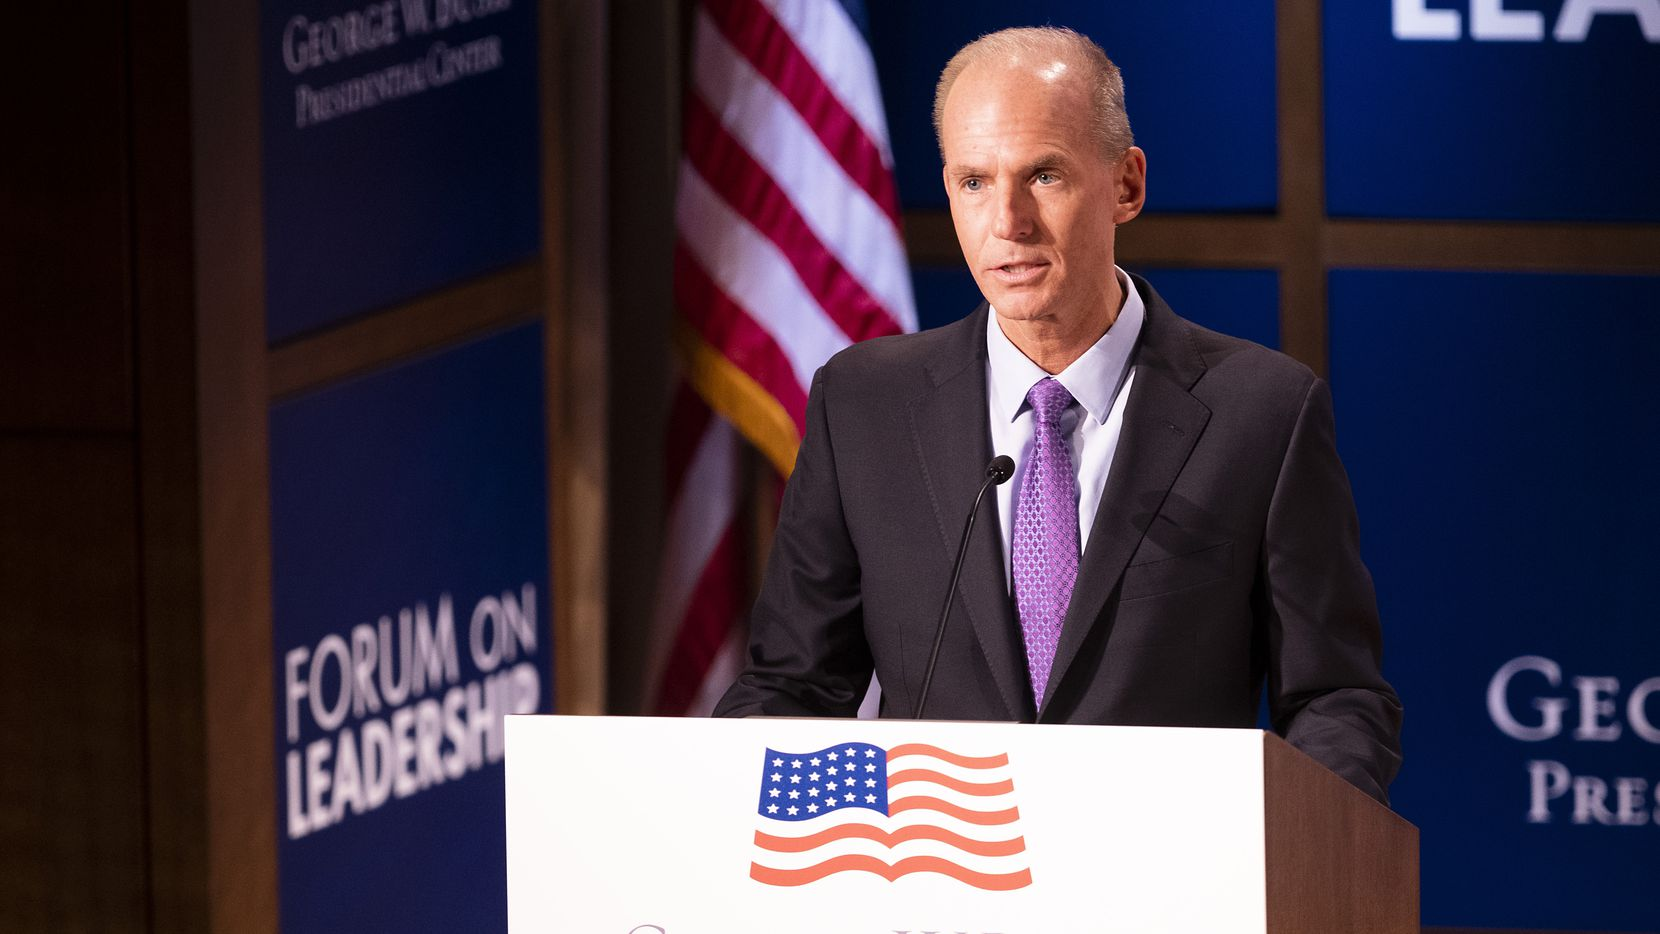 Dennis Muilenburg spoke at the Forum on Leadership at the George, W. Bush Presidential Center on Thursday, April 11, 2019, in Dallas. (Smiley N. Pool/The Dallas Morning News)